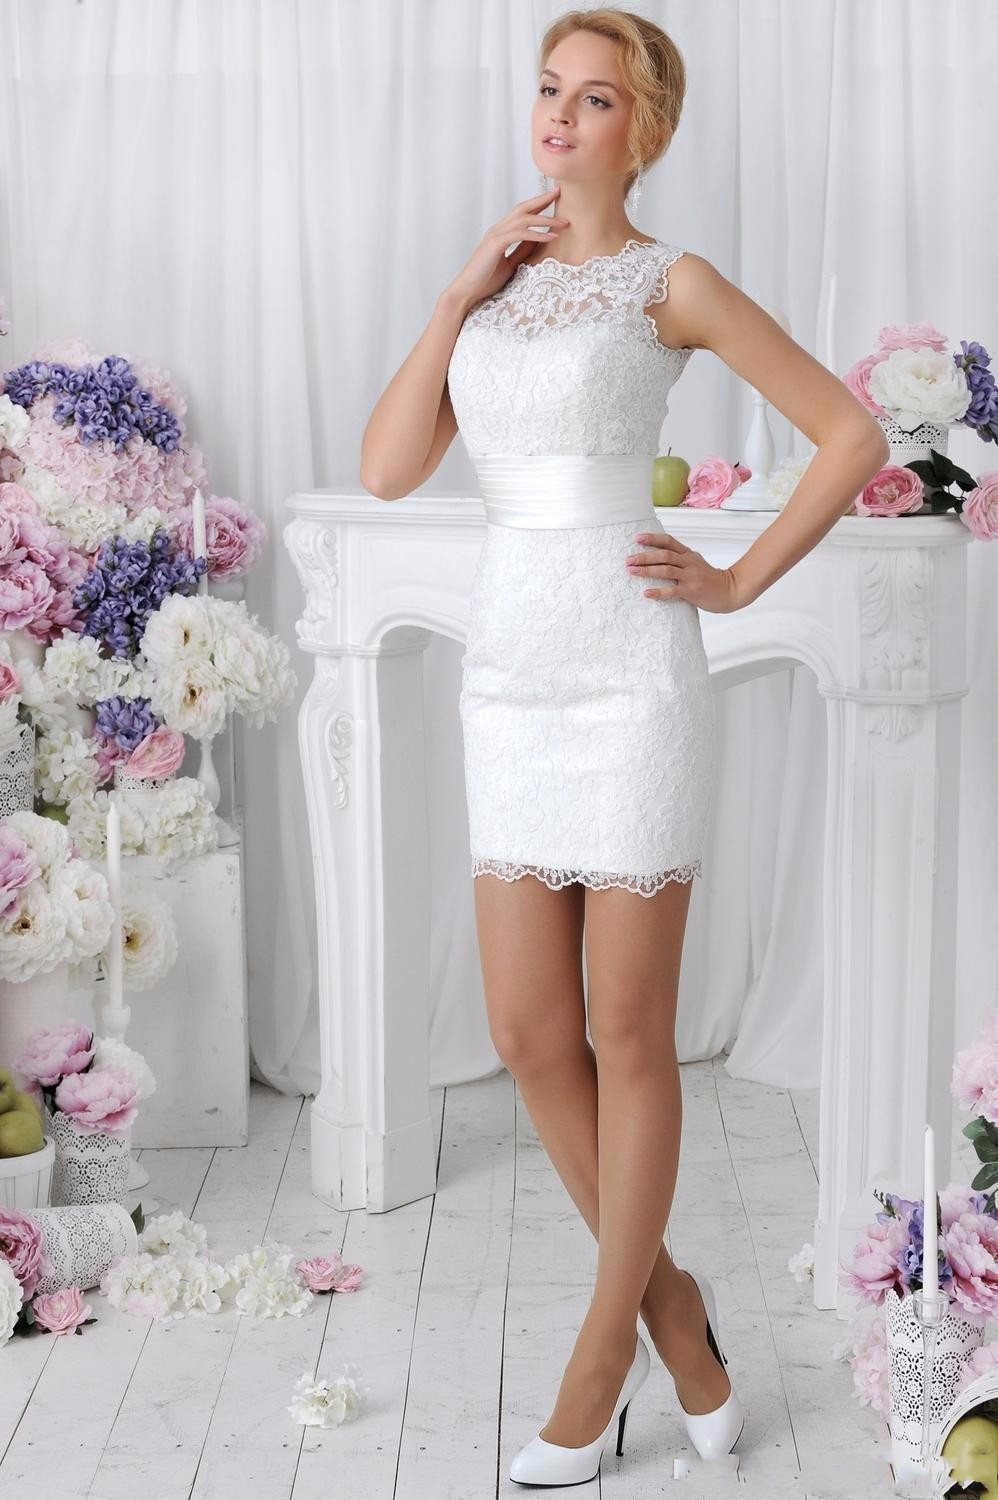 Lace Wedding Dress With Detachable Skirt at Bling Brides Bouquet online bridal s image 2